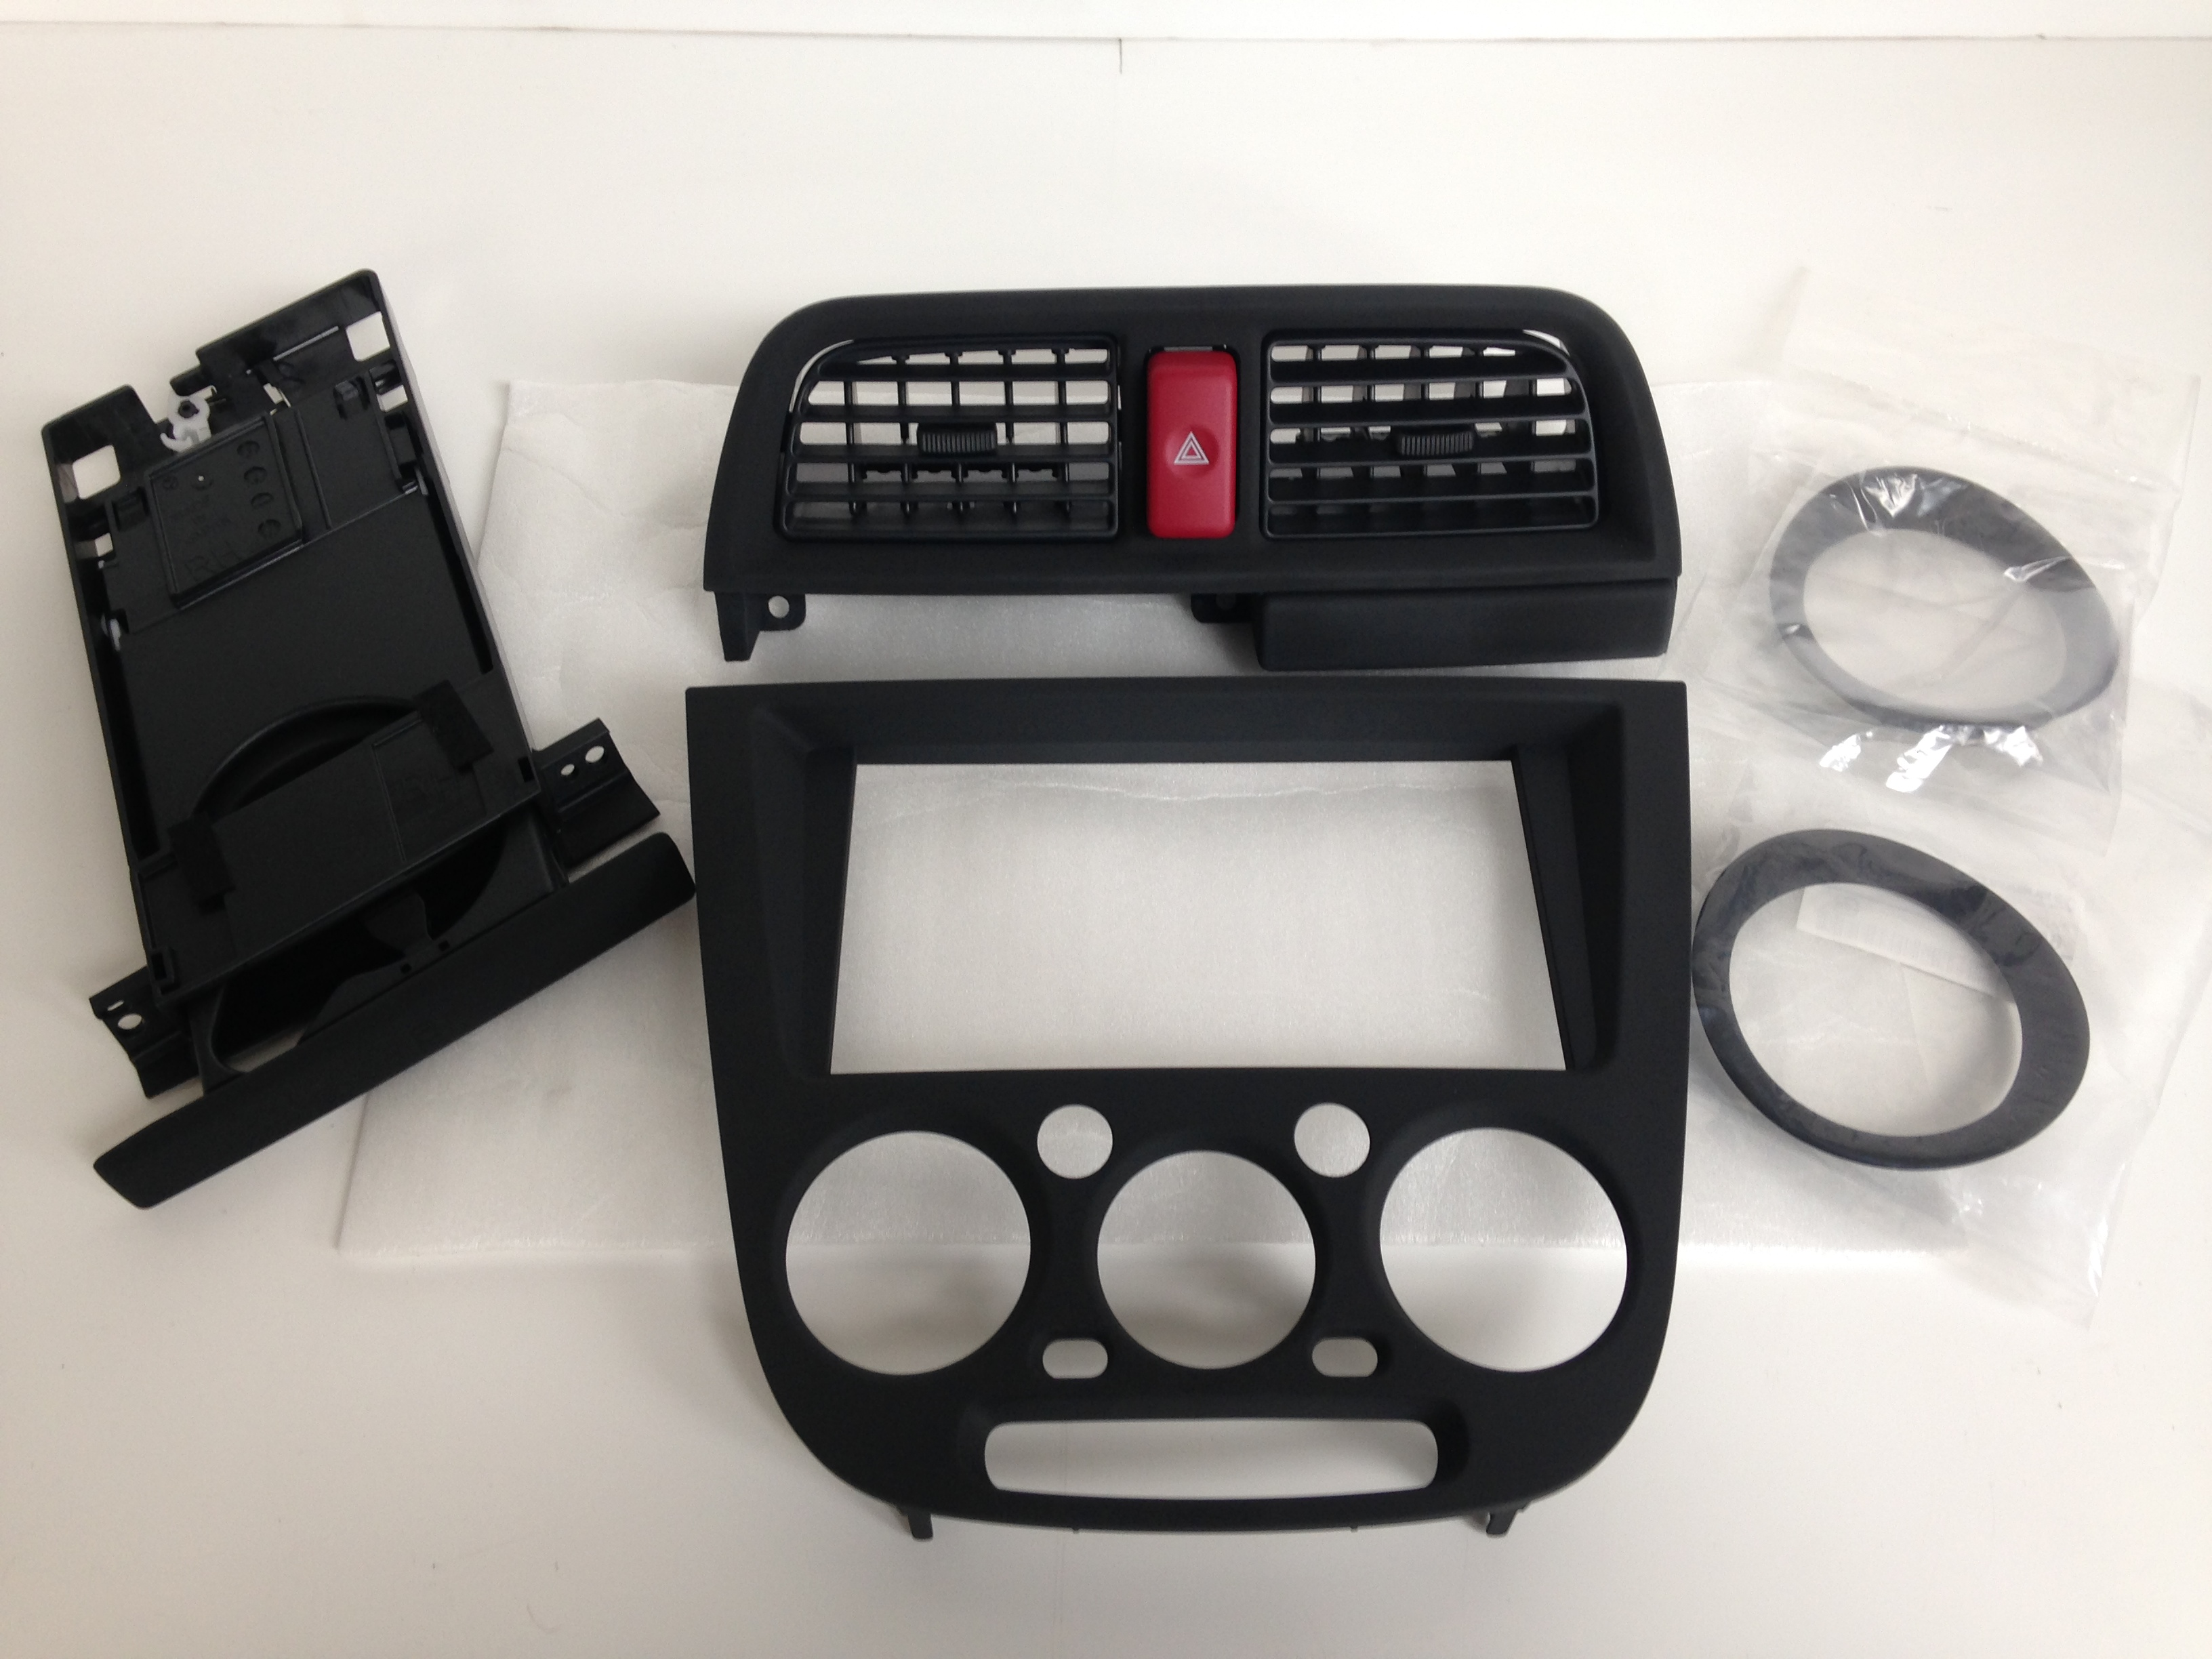 Impreza Spec C black dash kits